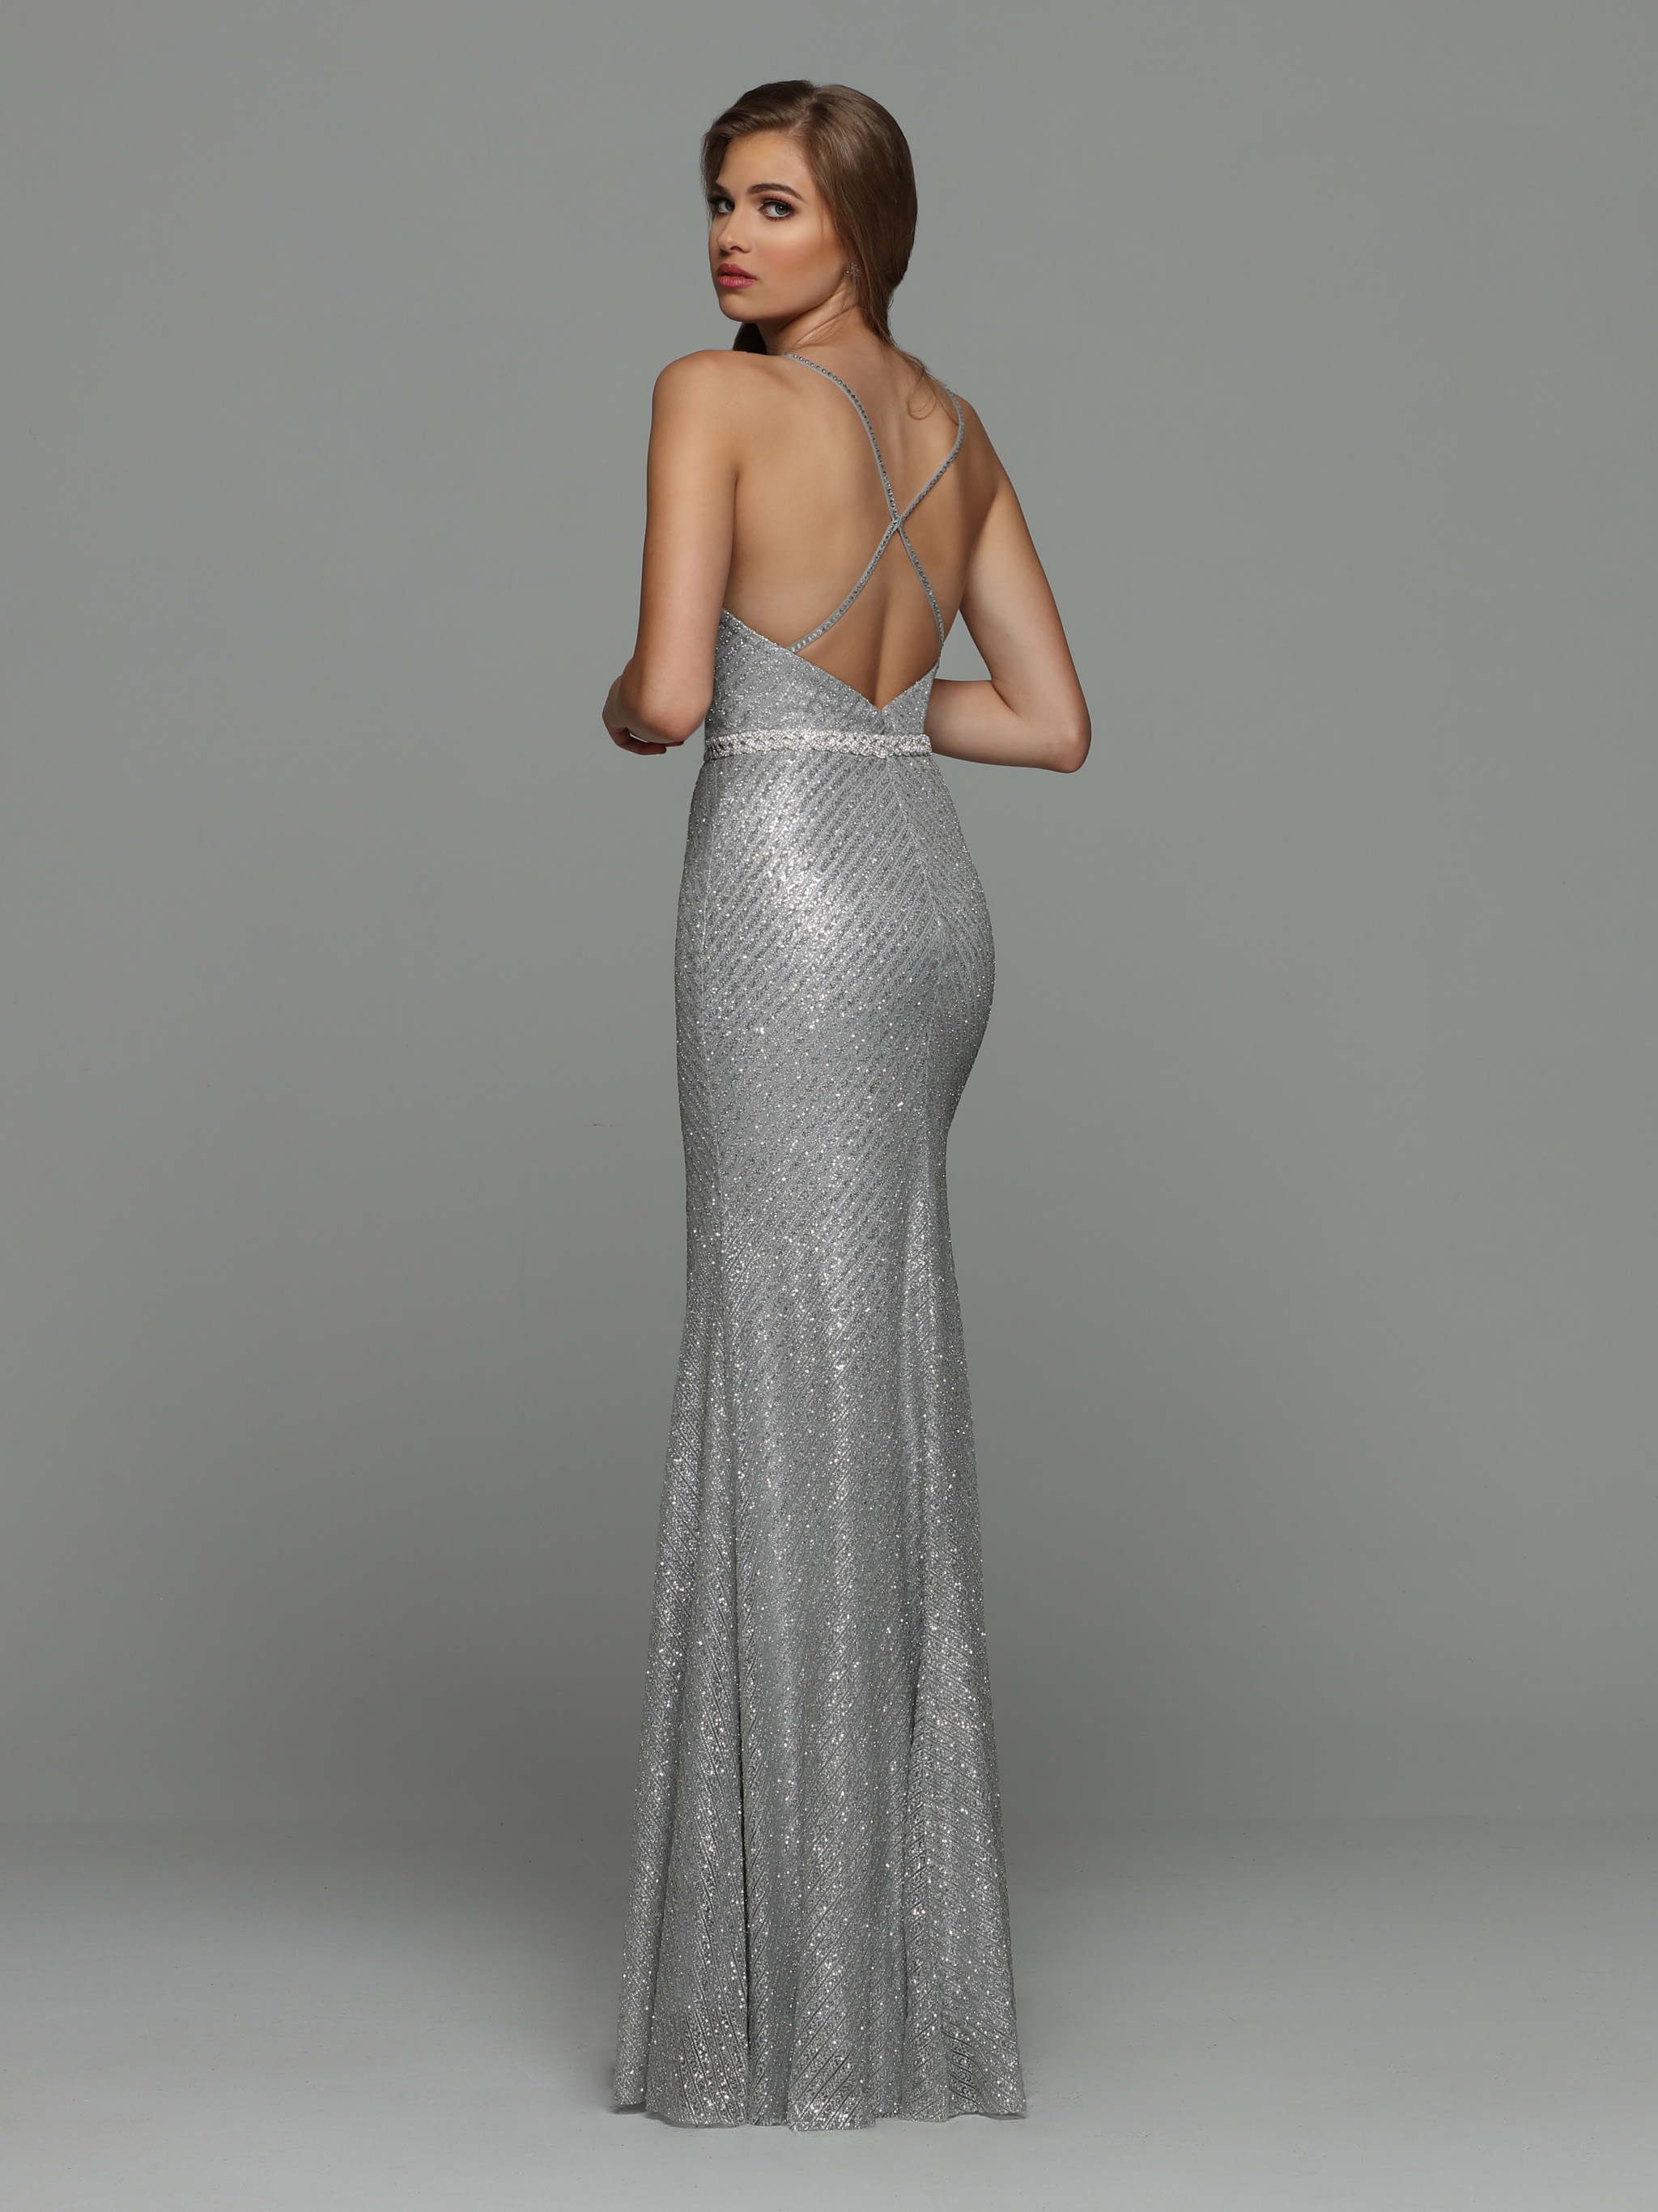 Image showing back view of style #71920